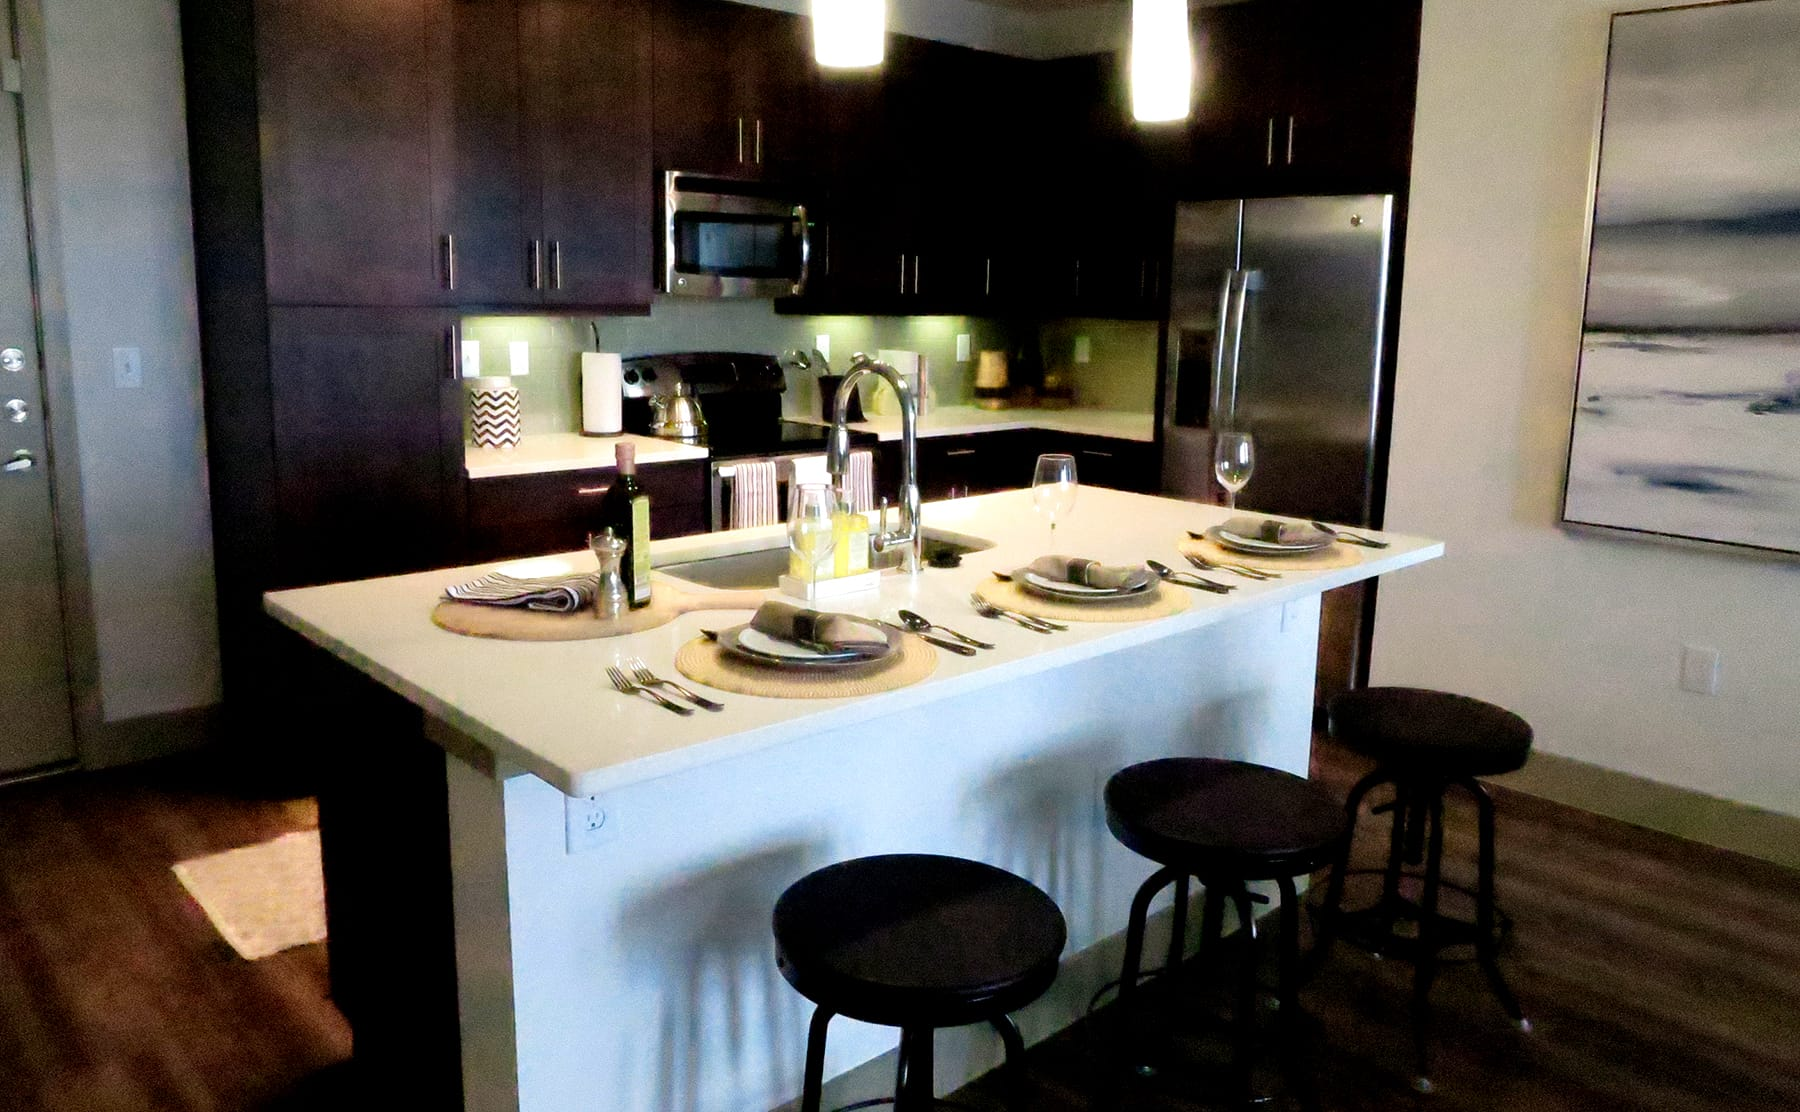 Midtown Dallas Apartment Living - Upscale Kitchens